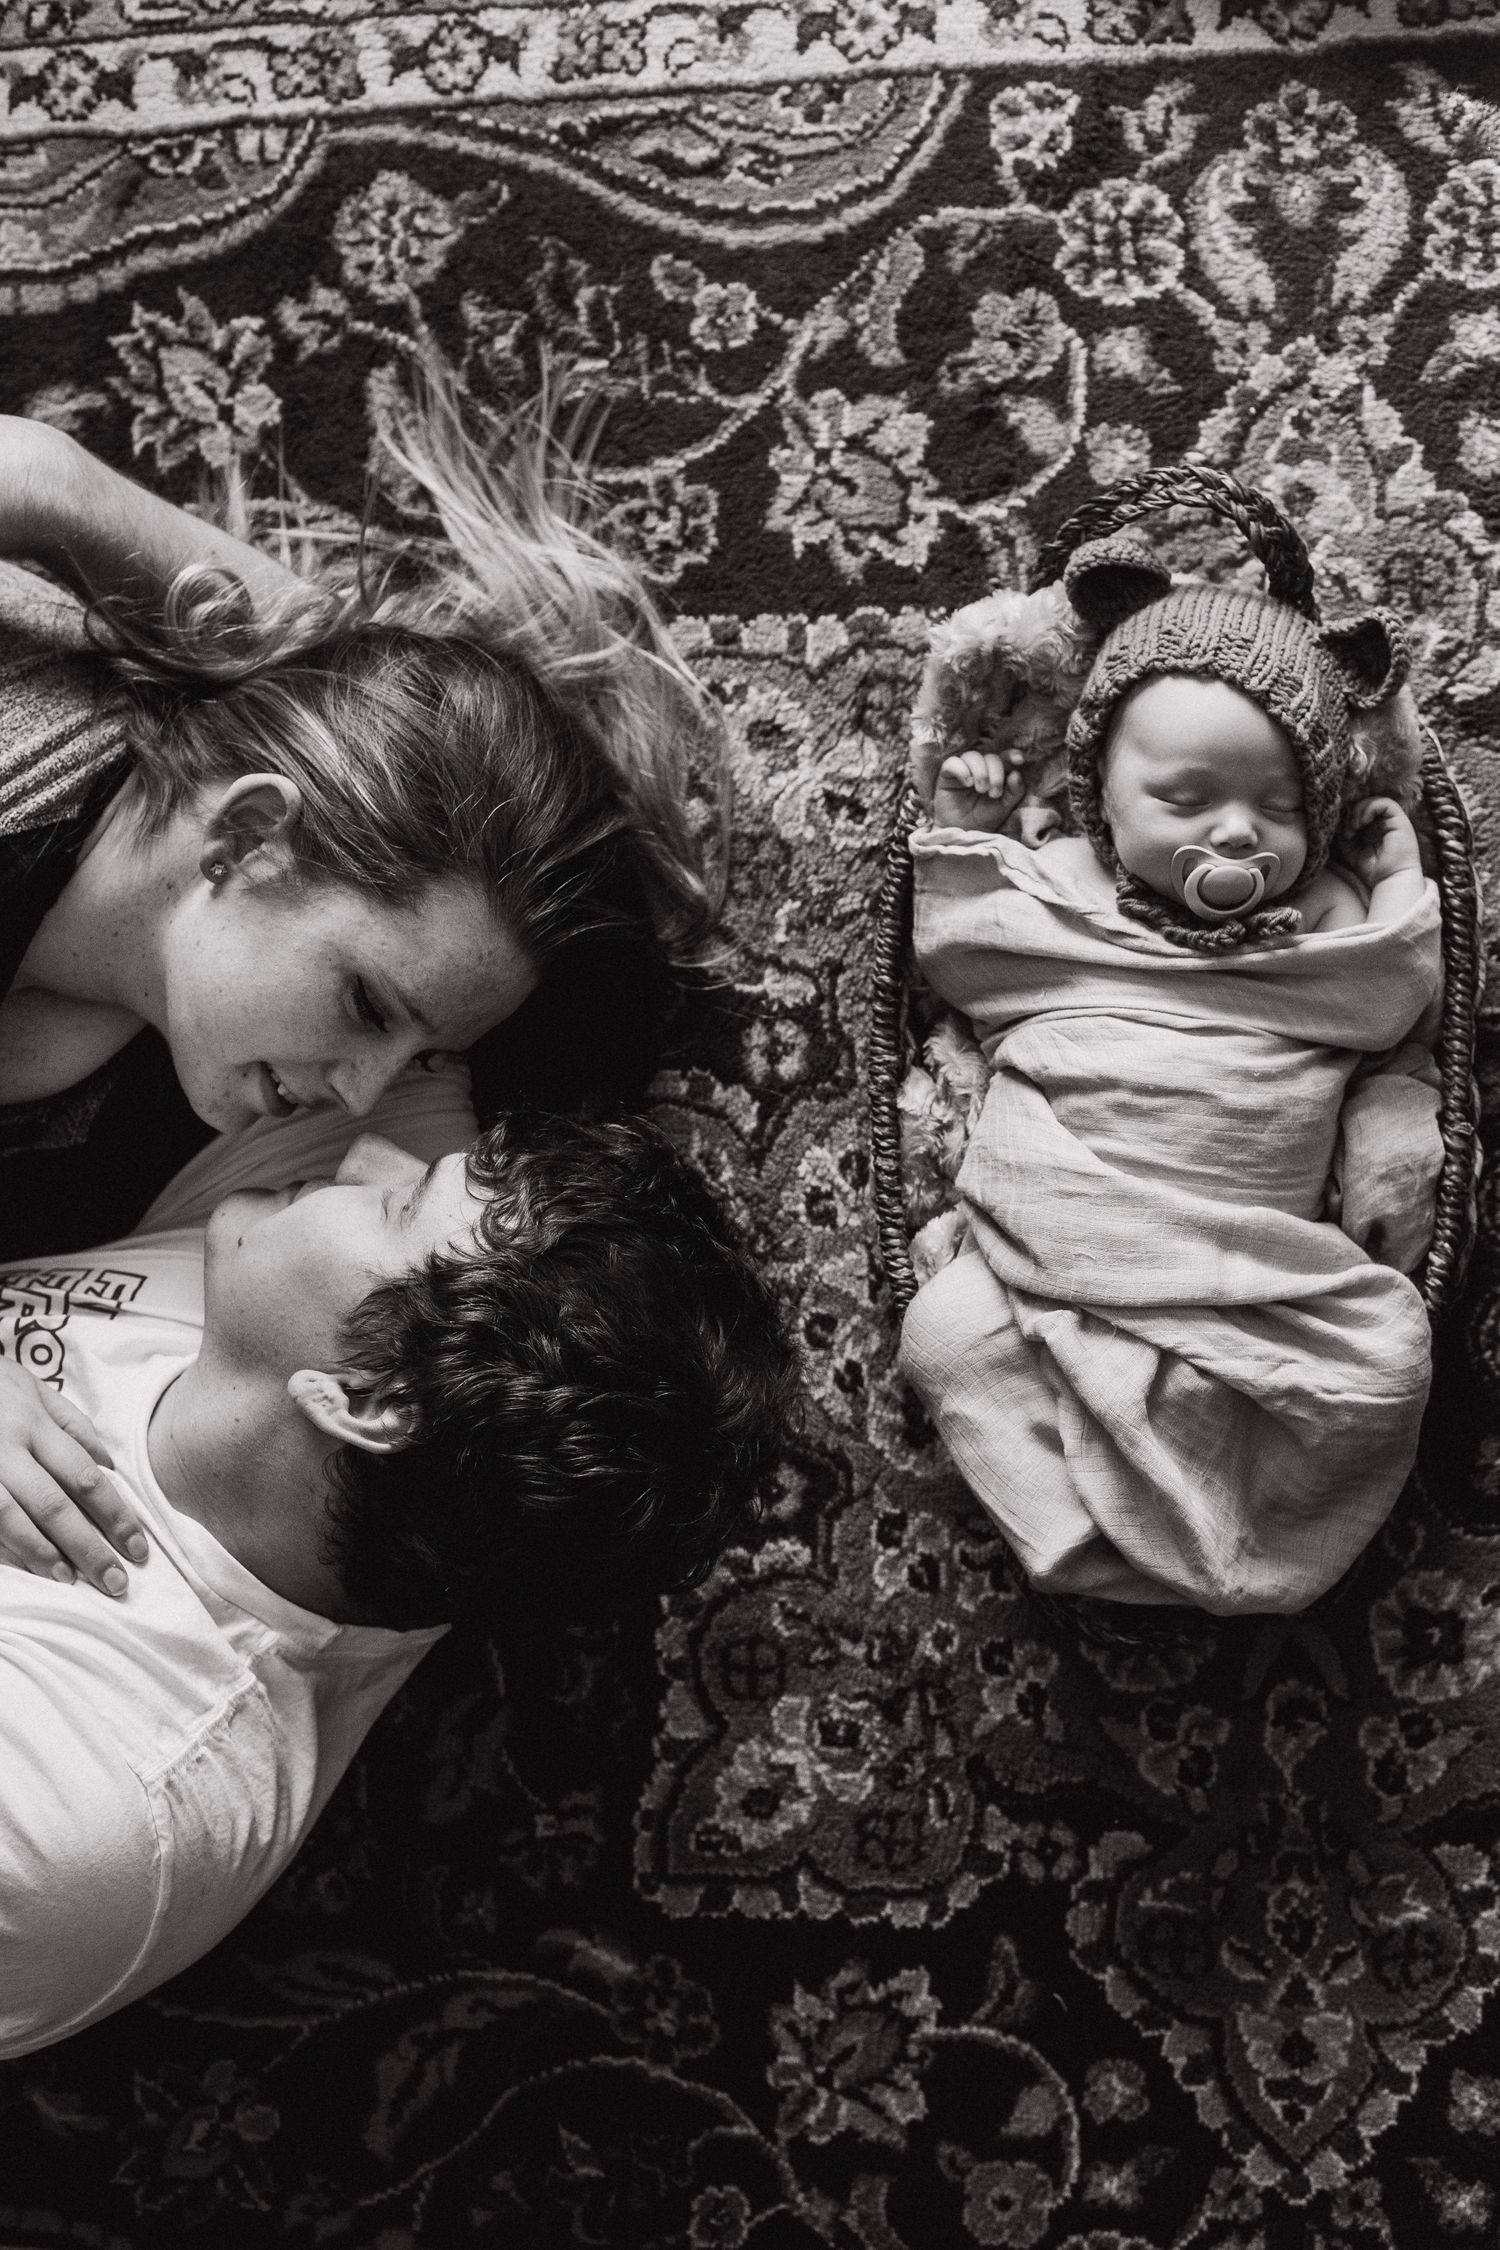 parents look at each other while laying on the floor with newborn baby beside them in a basket